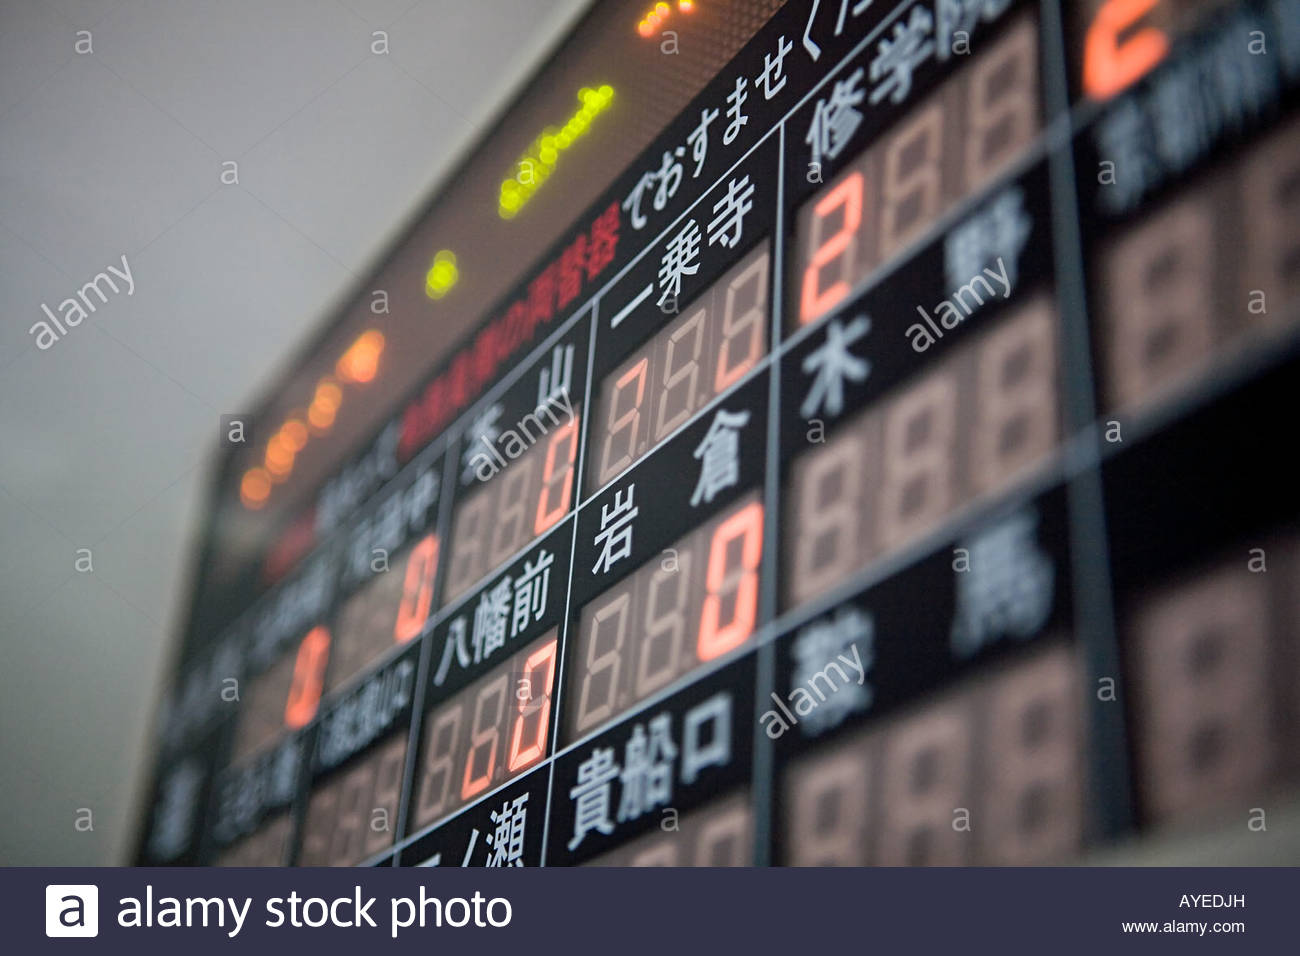 Price display board on a train - Stock Image